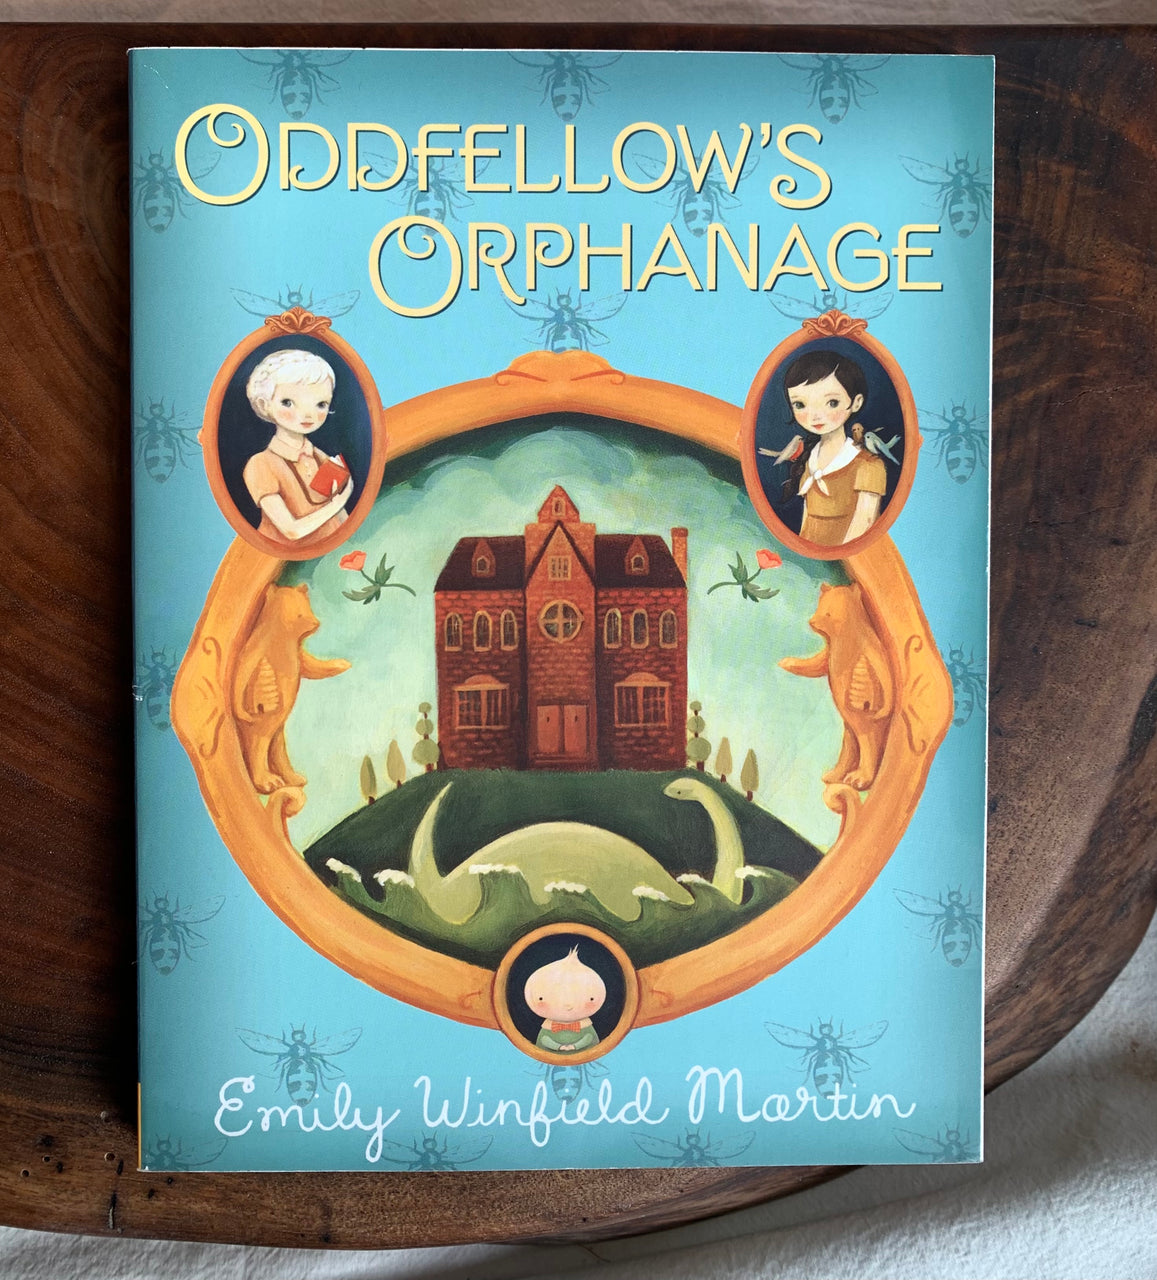 Oddfellow's Orphanage - Children's Book